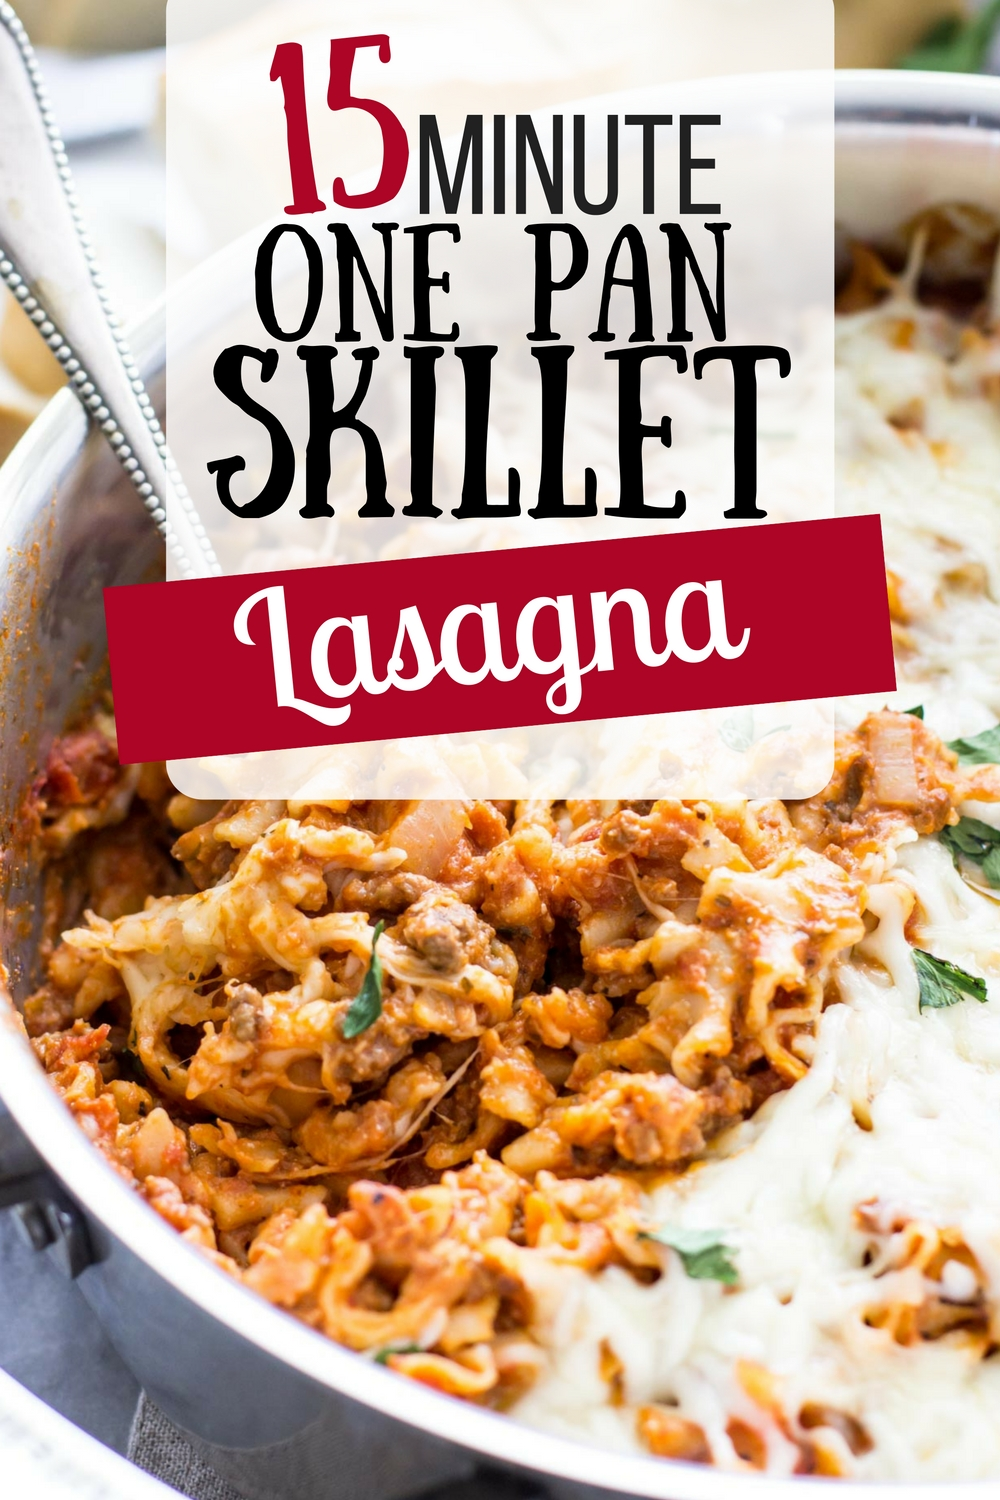 15 Minute One Pot Lasagna- This is amazing! My kids are super picky and yet they ate every last bite. This is a win for dinner.